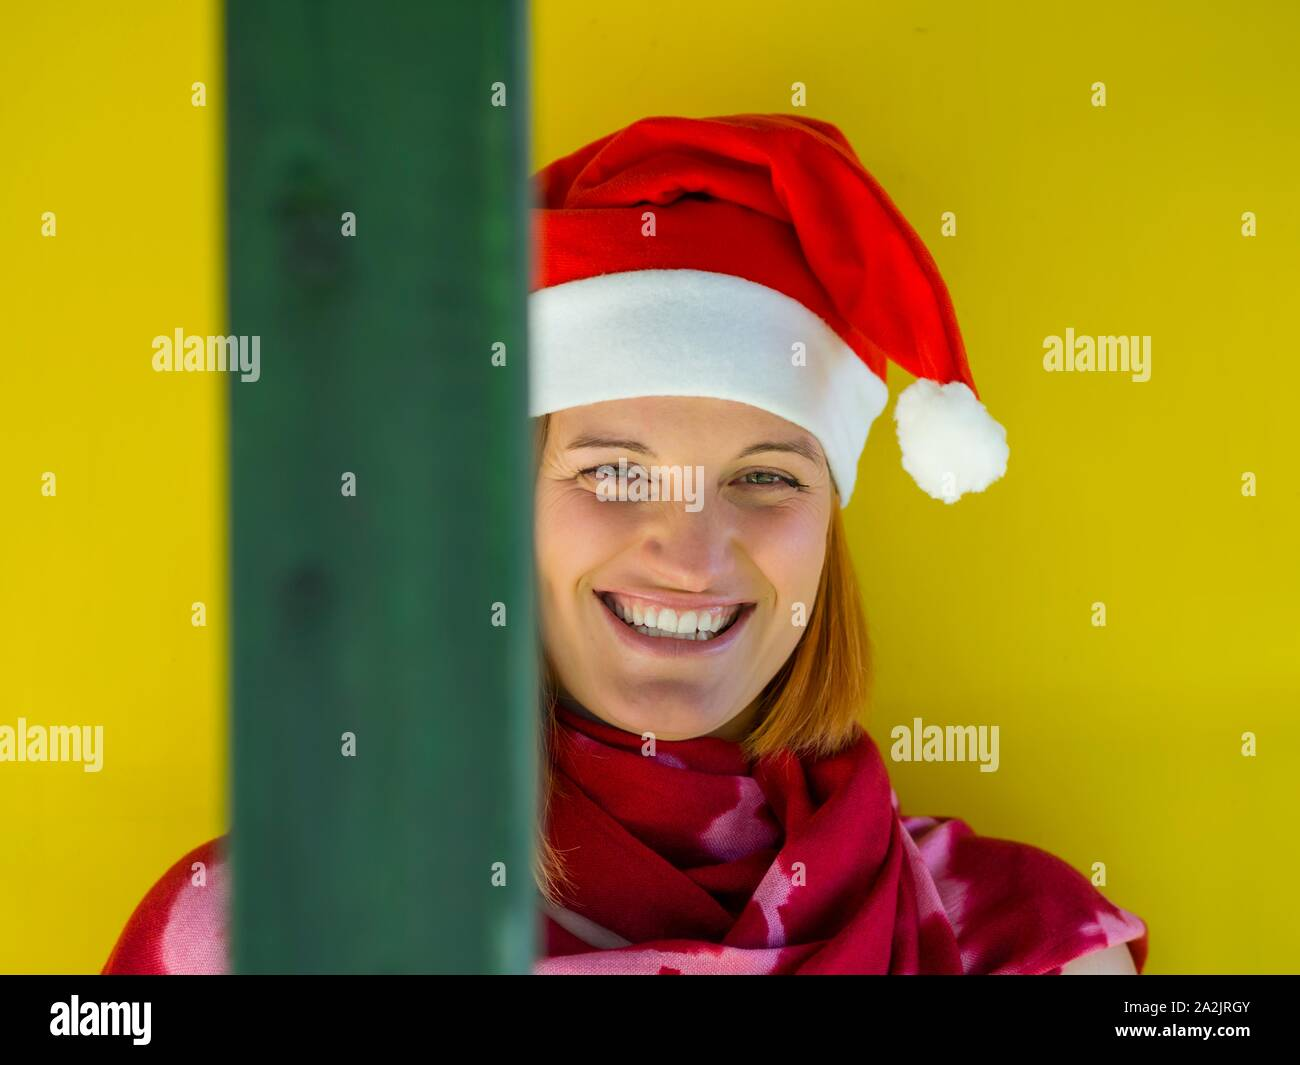 Happy and smiling female Red Santa portrait head and shoulders Yellow background eyeshot looking at camera eye eyes contact Stock Photo